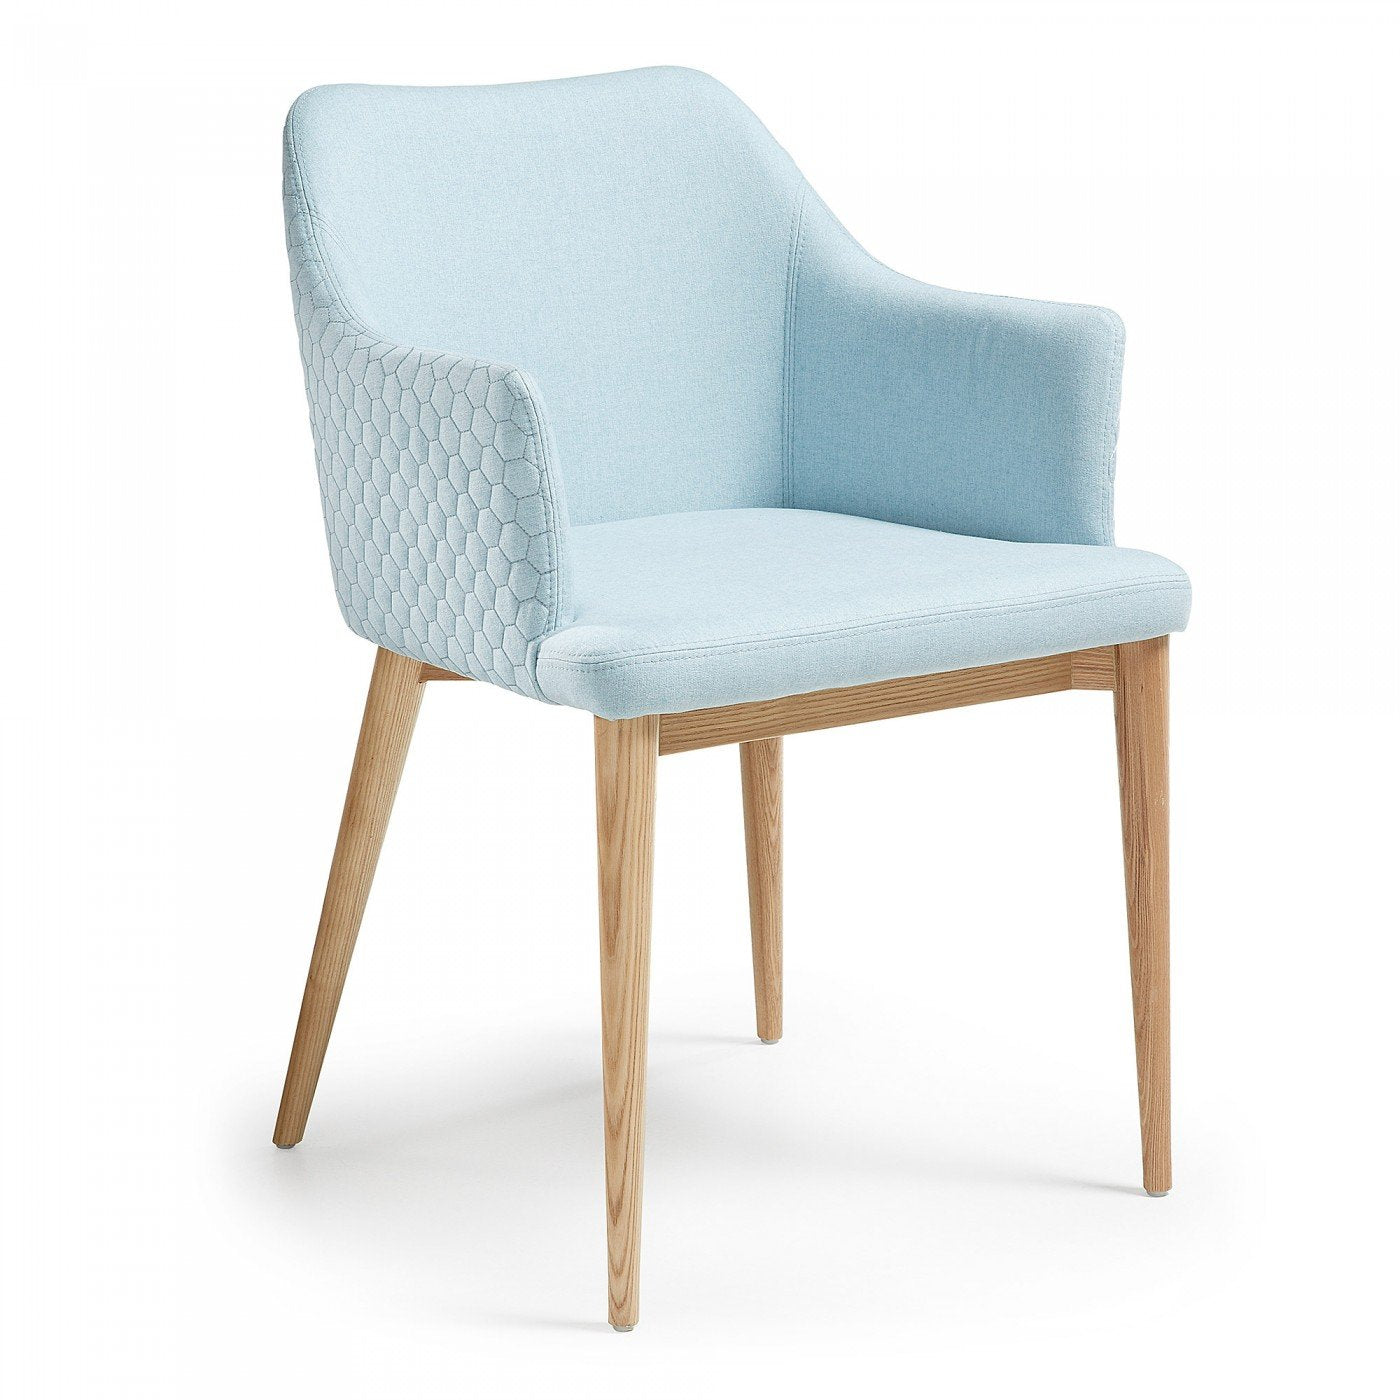 Danai Quilted Armchair in Light Blue